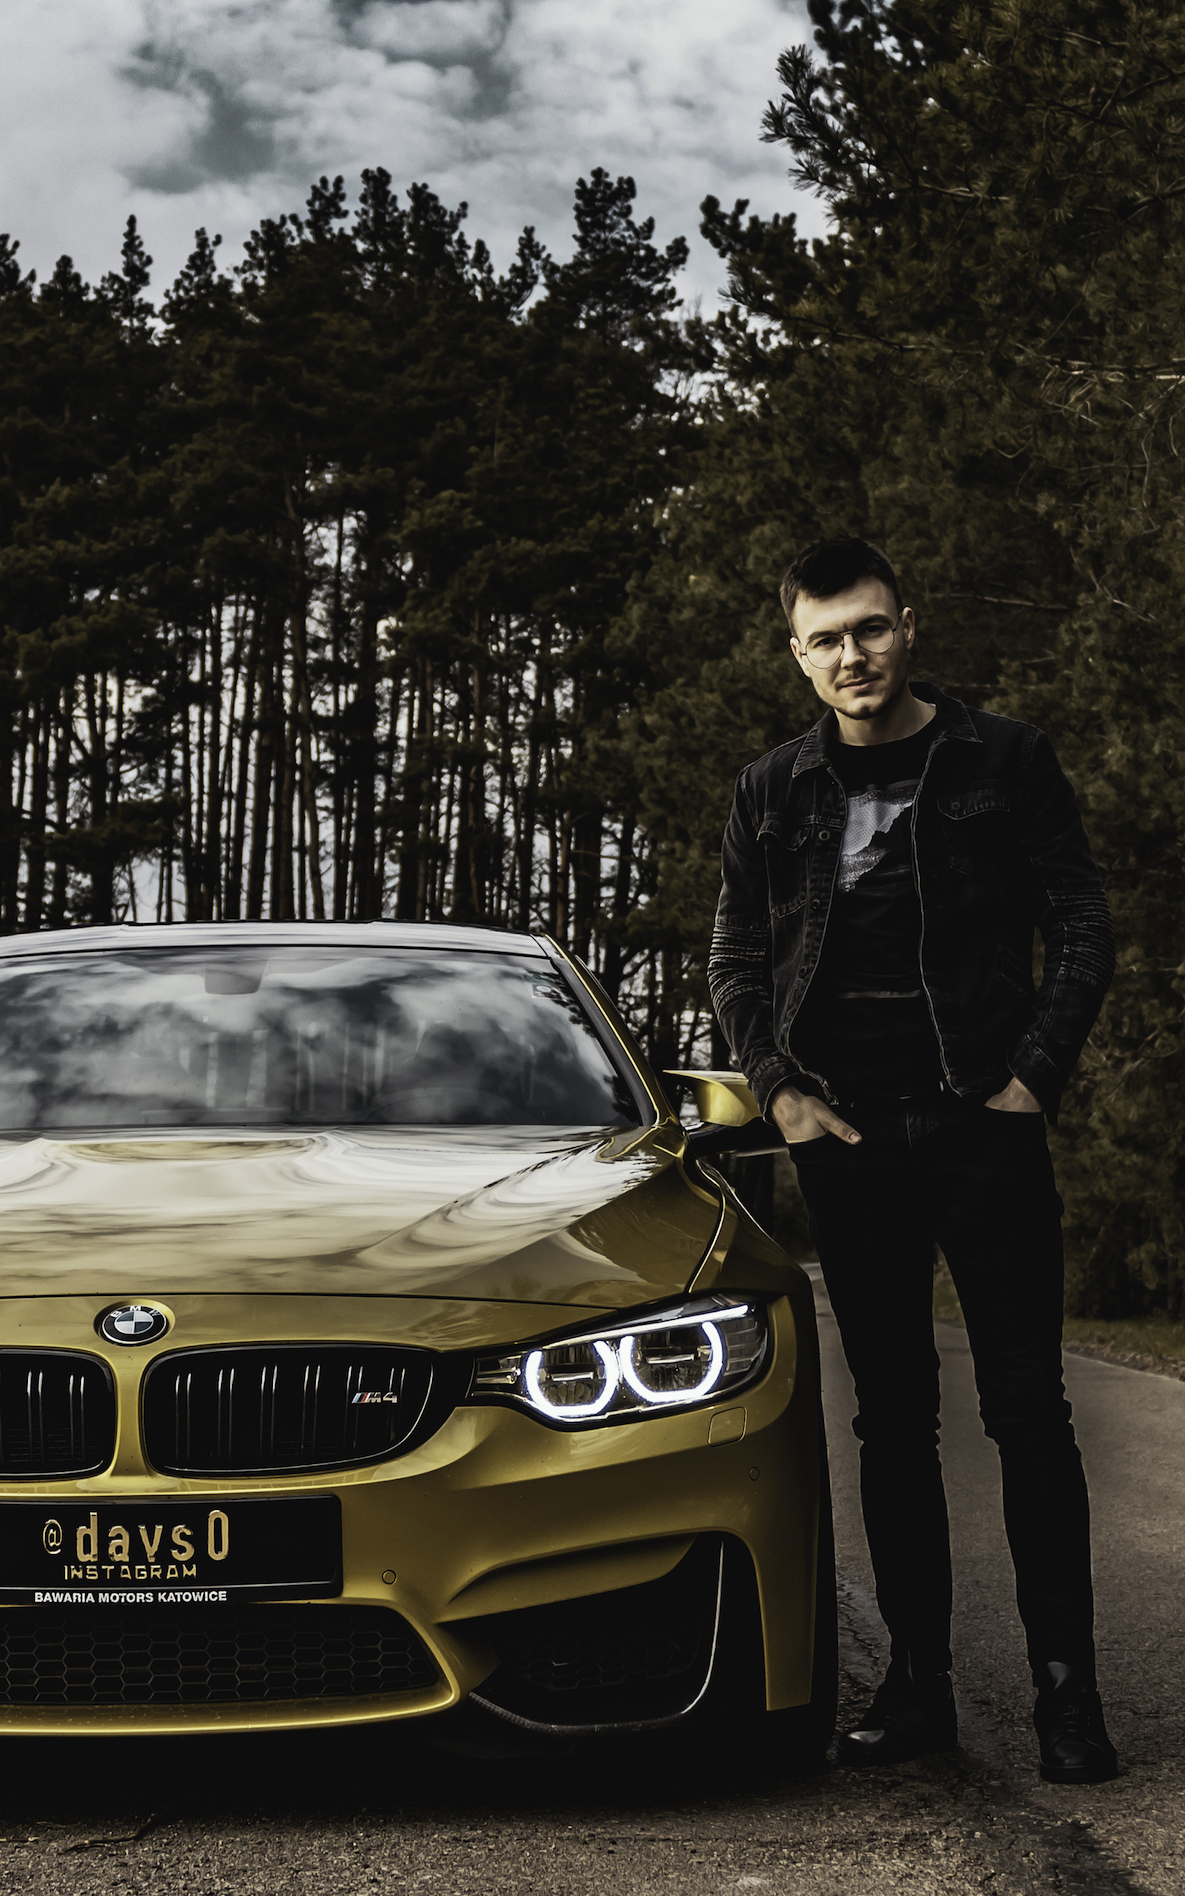 Instagrammer davs0 with his BMW M4 Coupé